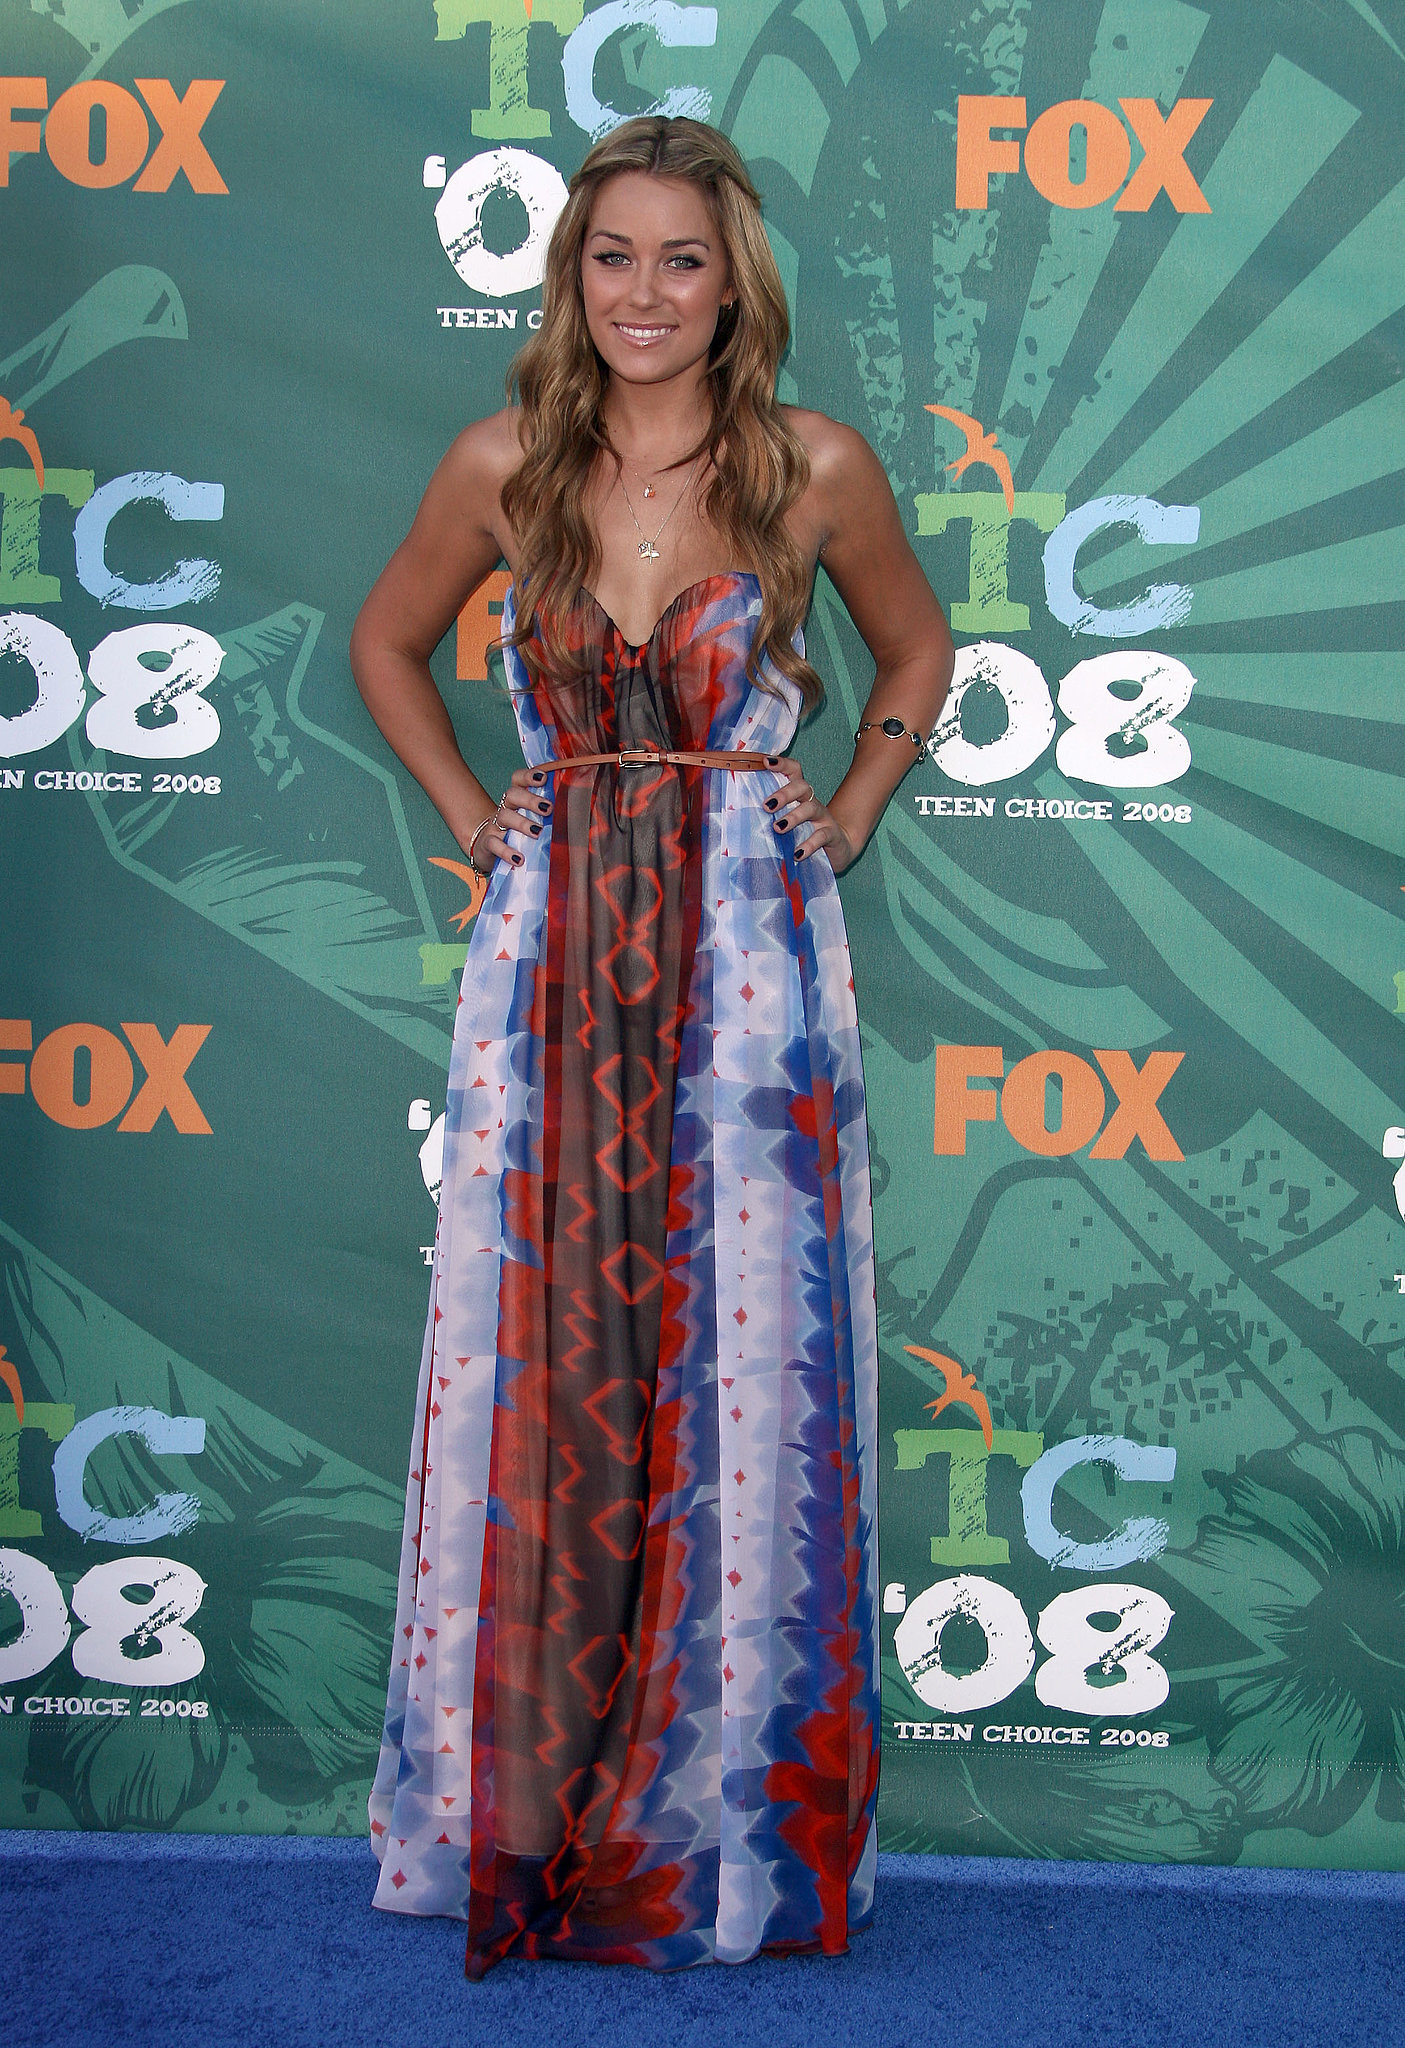 Lauren cinched her breezy printed maxidress with a thin leather belt at the 2008 Teen Choice Awards. Lesson from Lauren: a colorful maxi is a welcome change from standard minis.